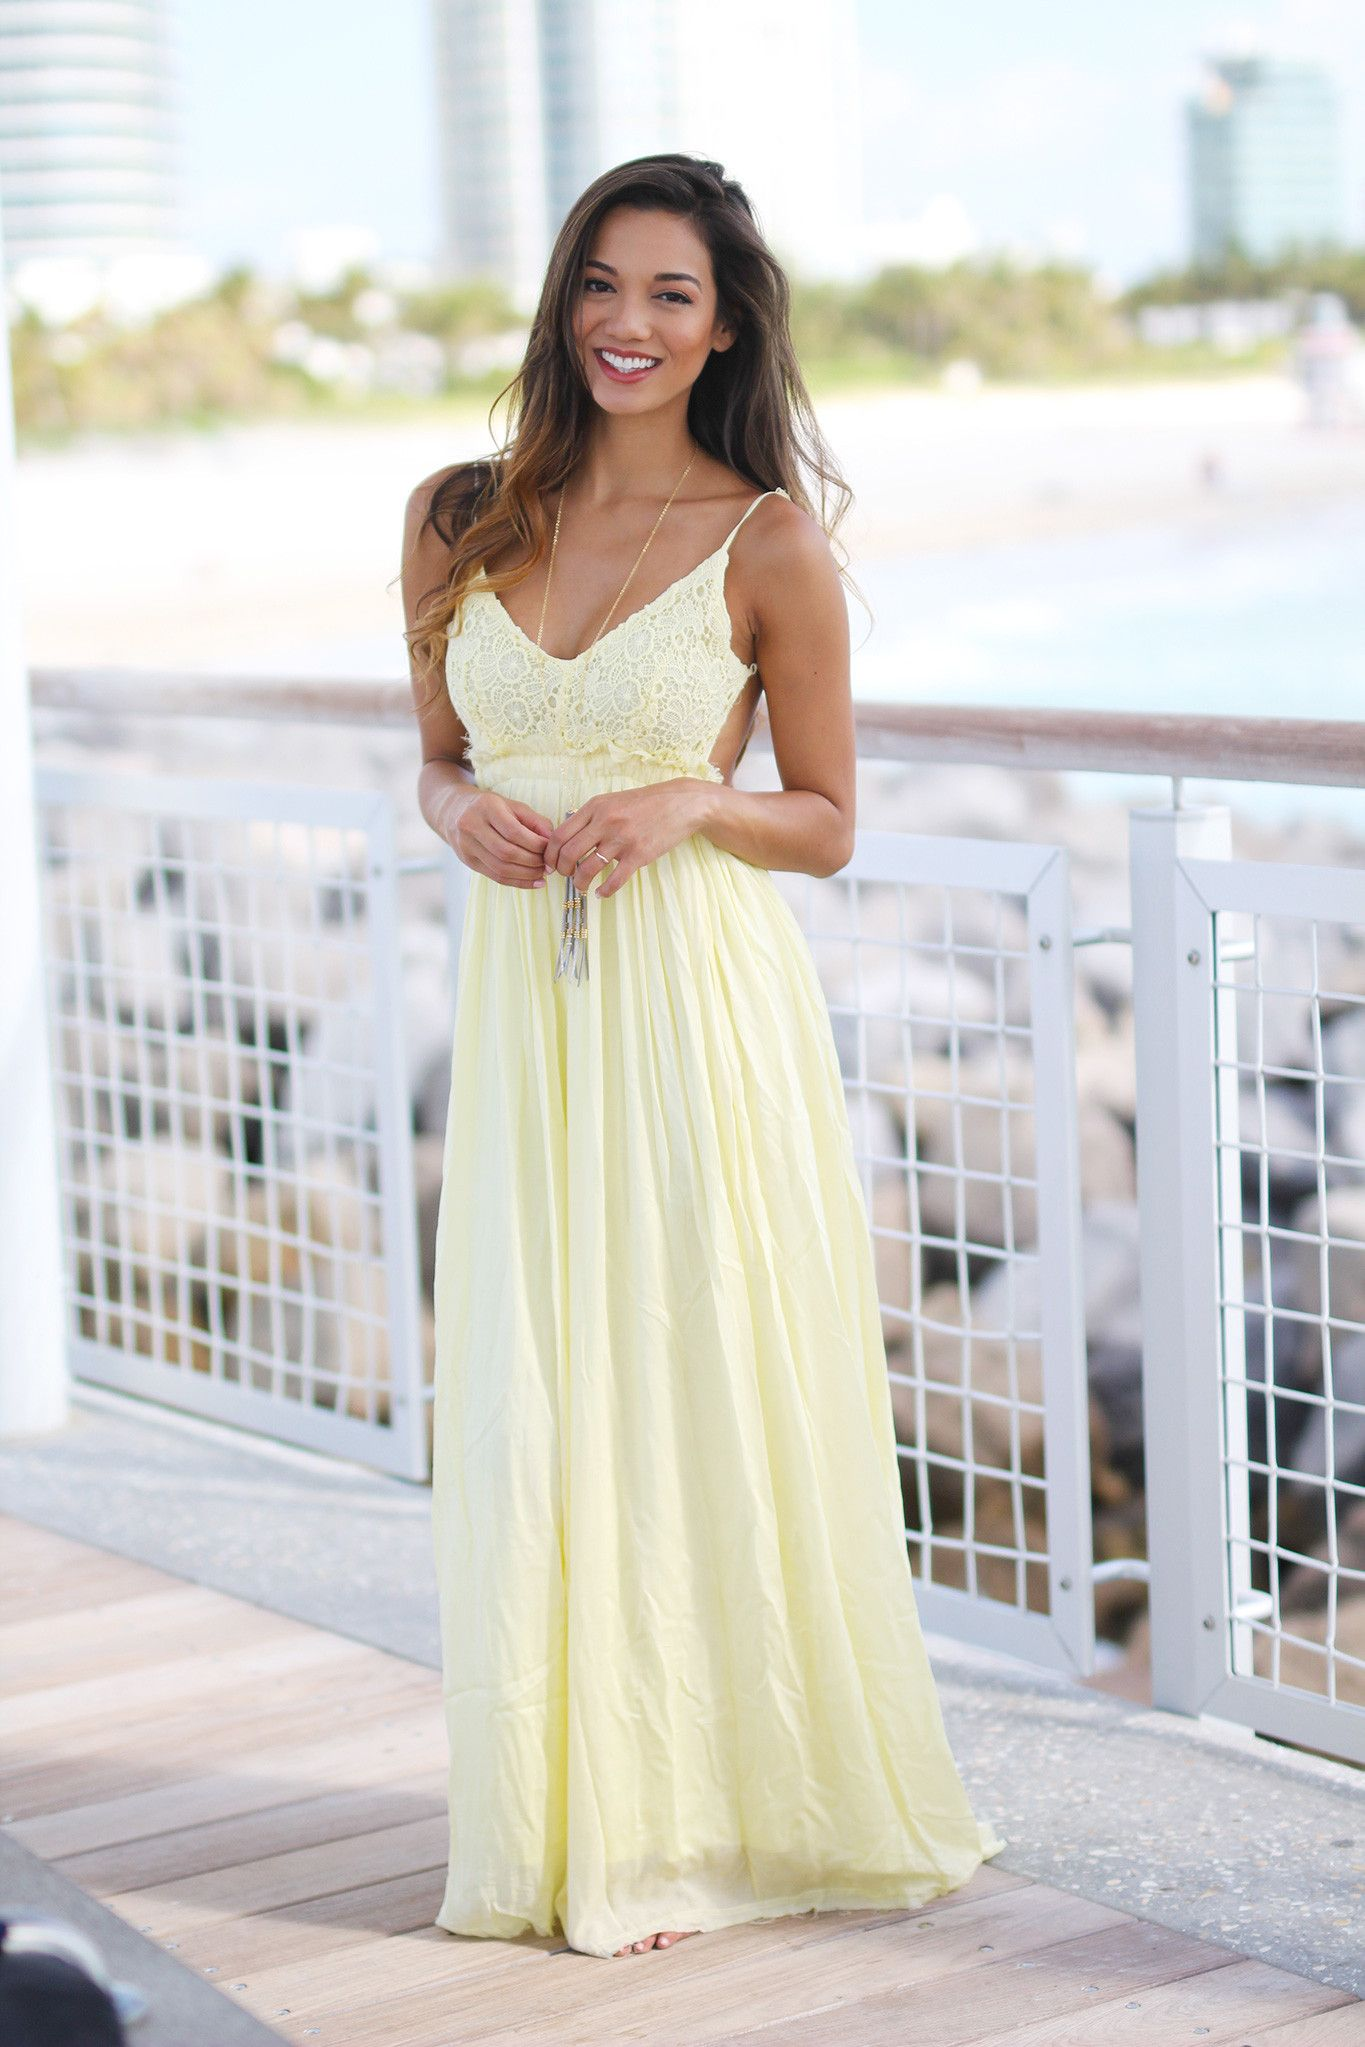 303c266adcee85 Take a look at this super elegant Yellow Lace Maxi Dress with Open Back!  Perfect for any special occasion! We love its beautiful skirt and sexy open  back!